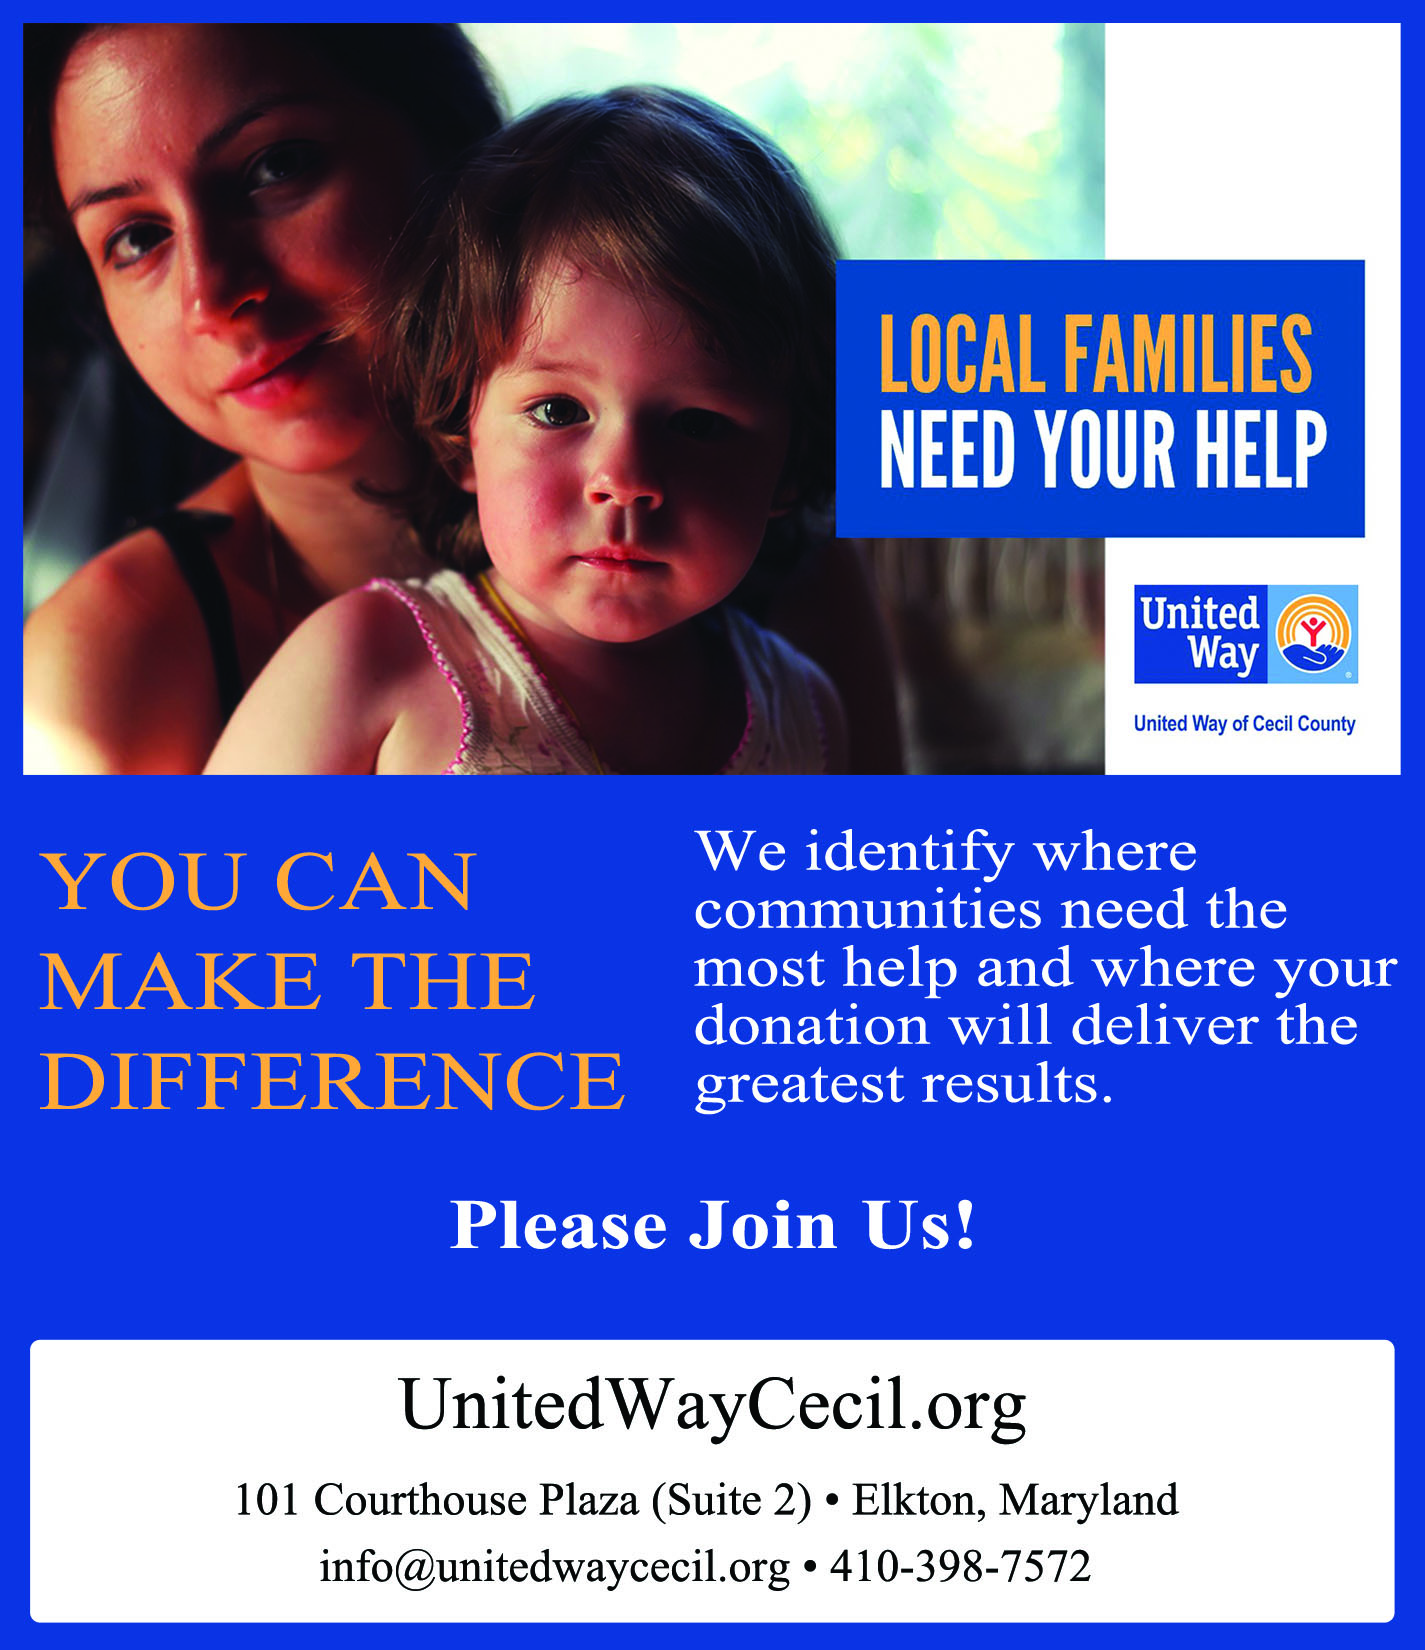 United Way Cecil